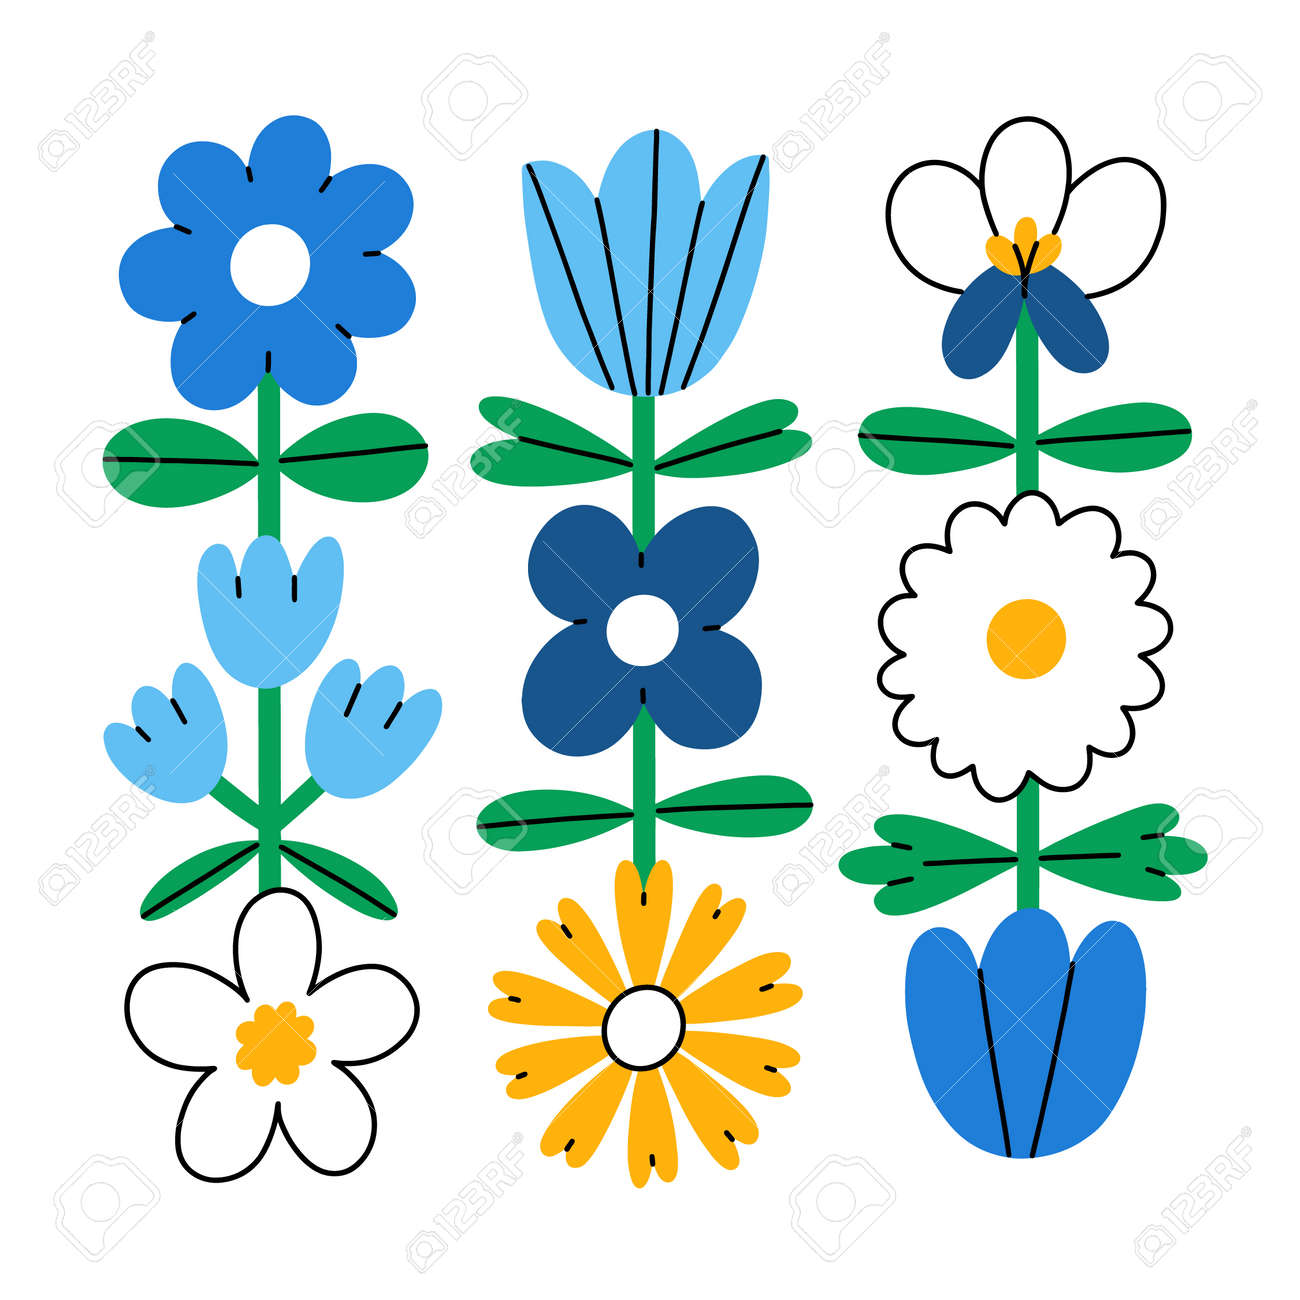 Abstract simple folk flowers, vector composition, isolated on white background - 164556575